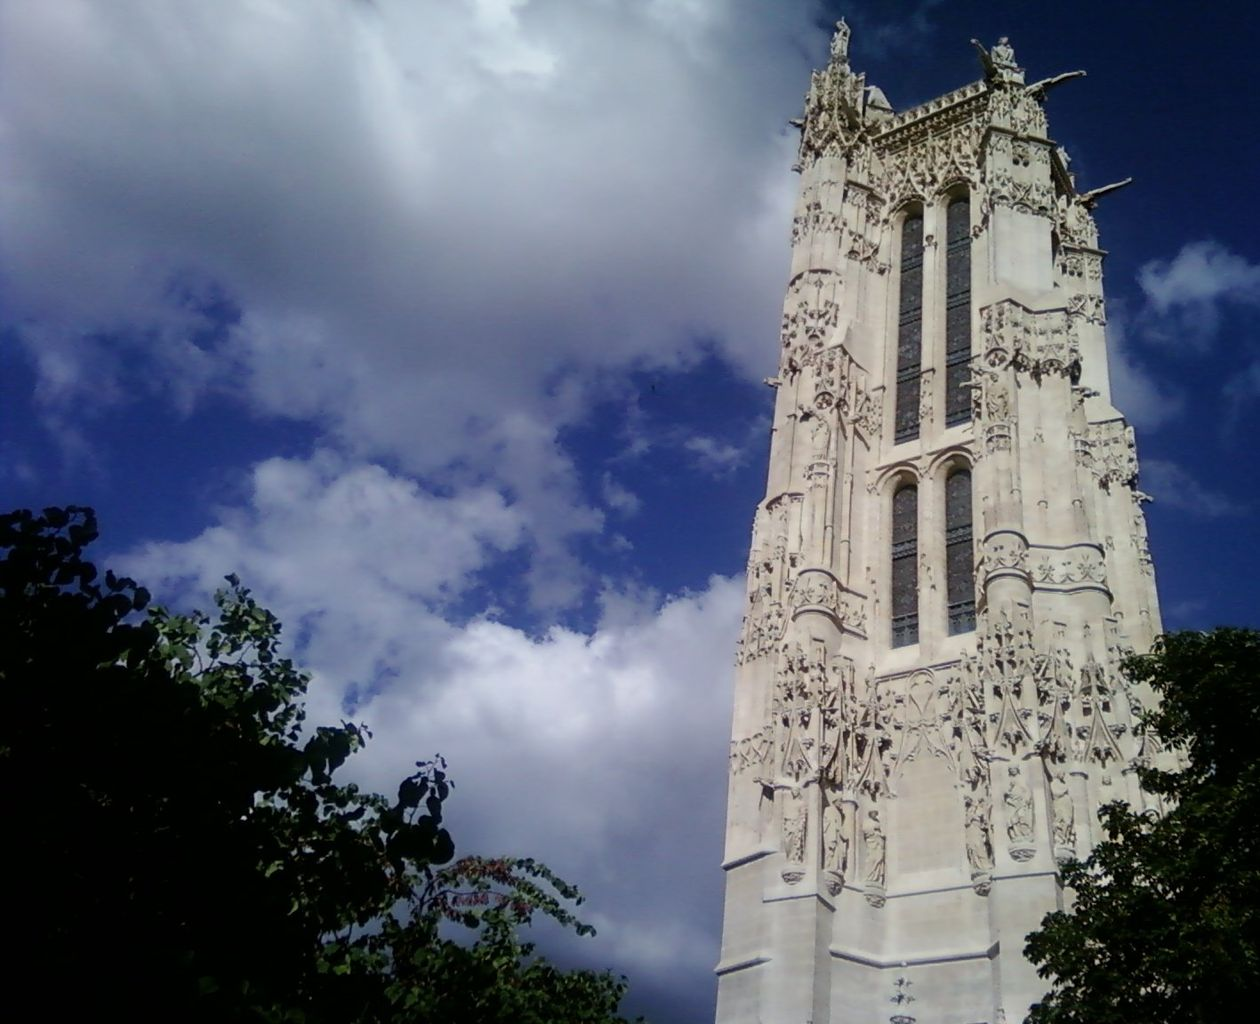 Tour Saint-Jacques Gothic Tower in Paris, France. Taken by Flickr user Cormac.